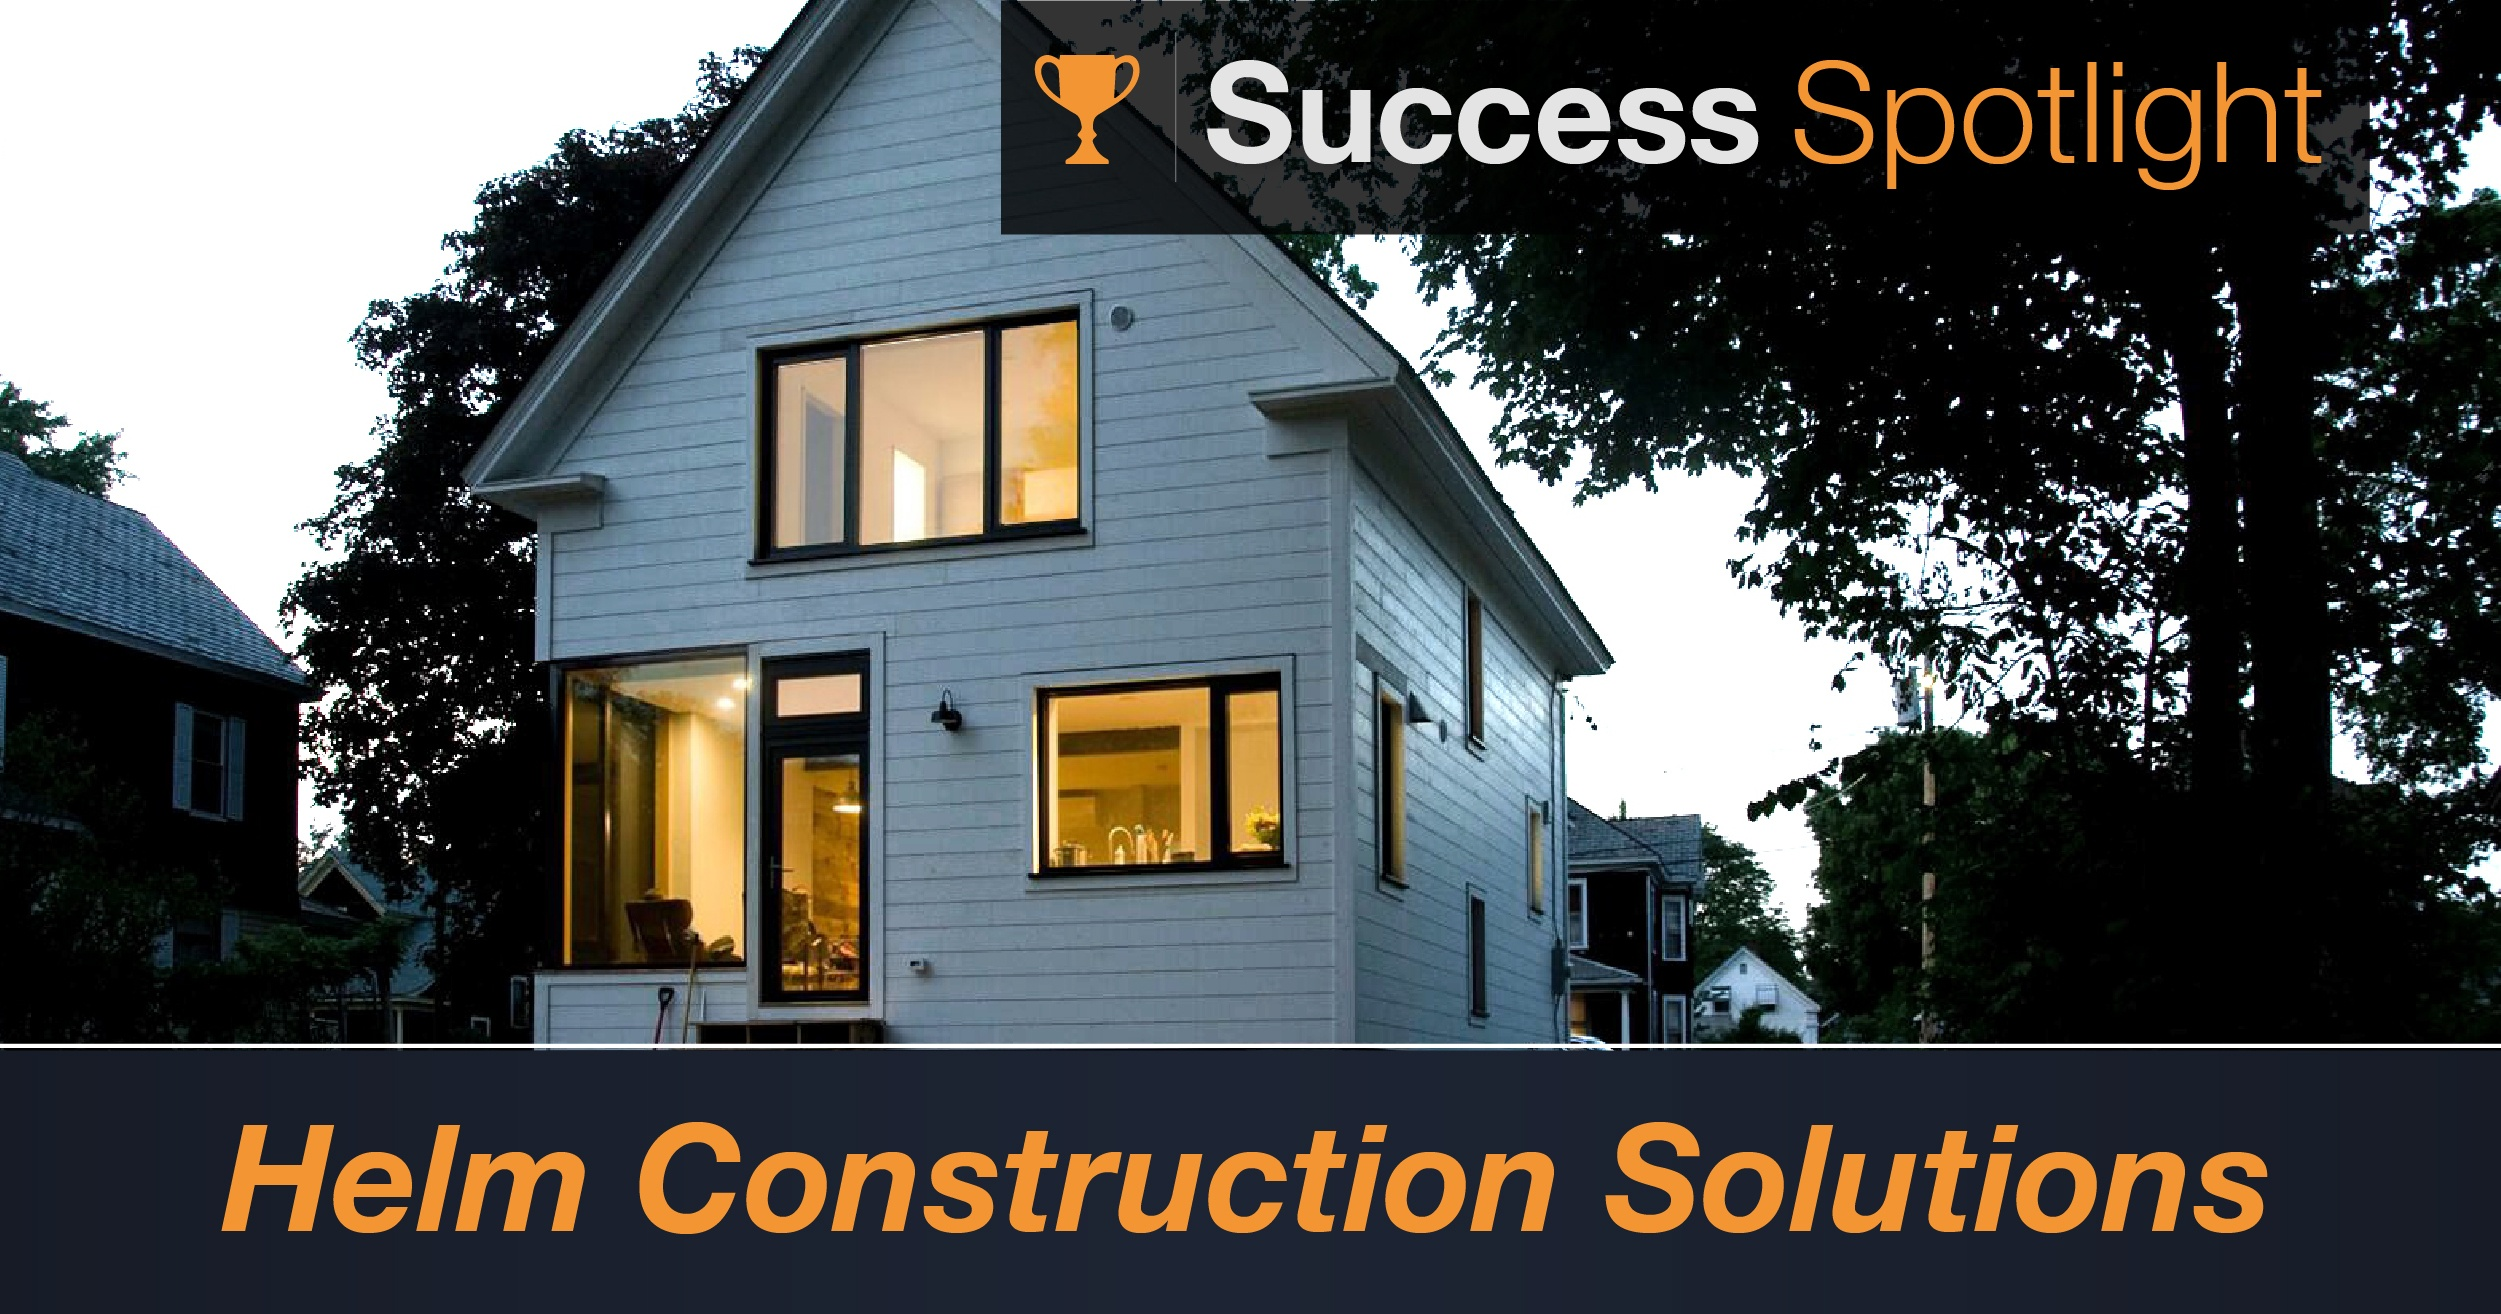 Success Spotlight: Helm Construction Solutions